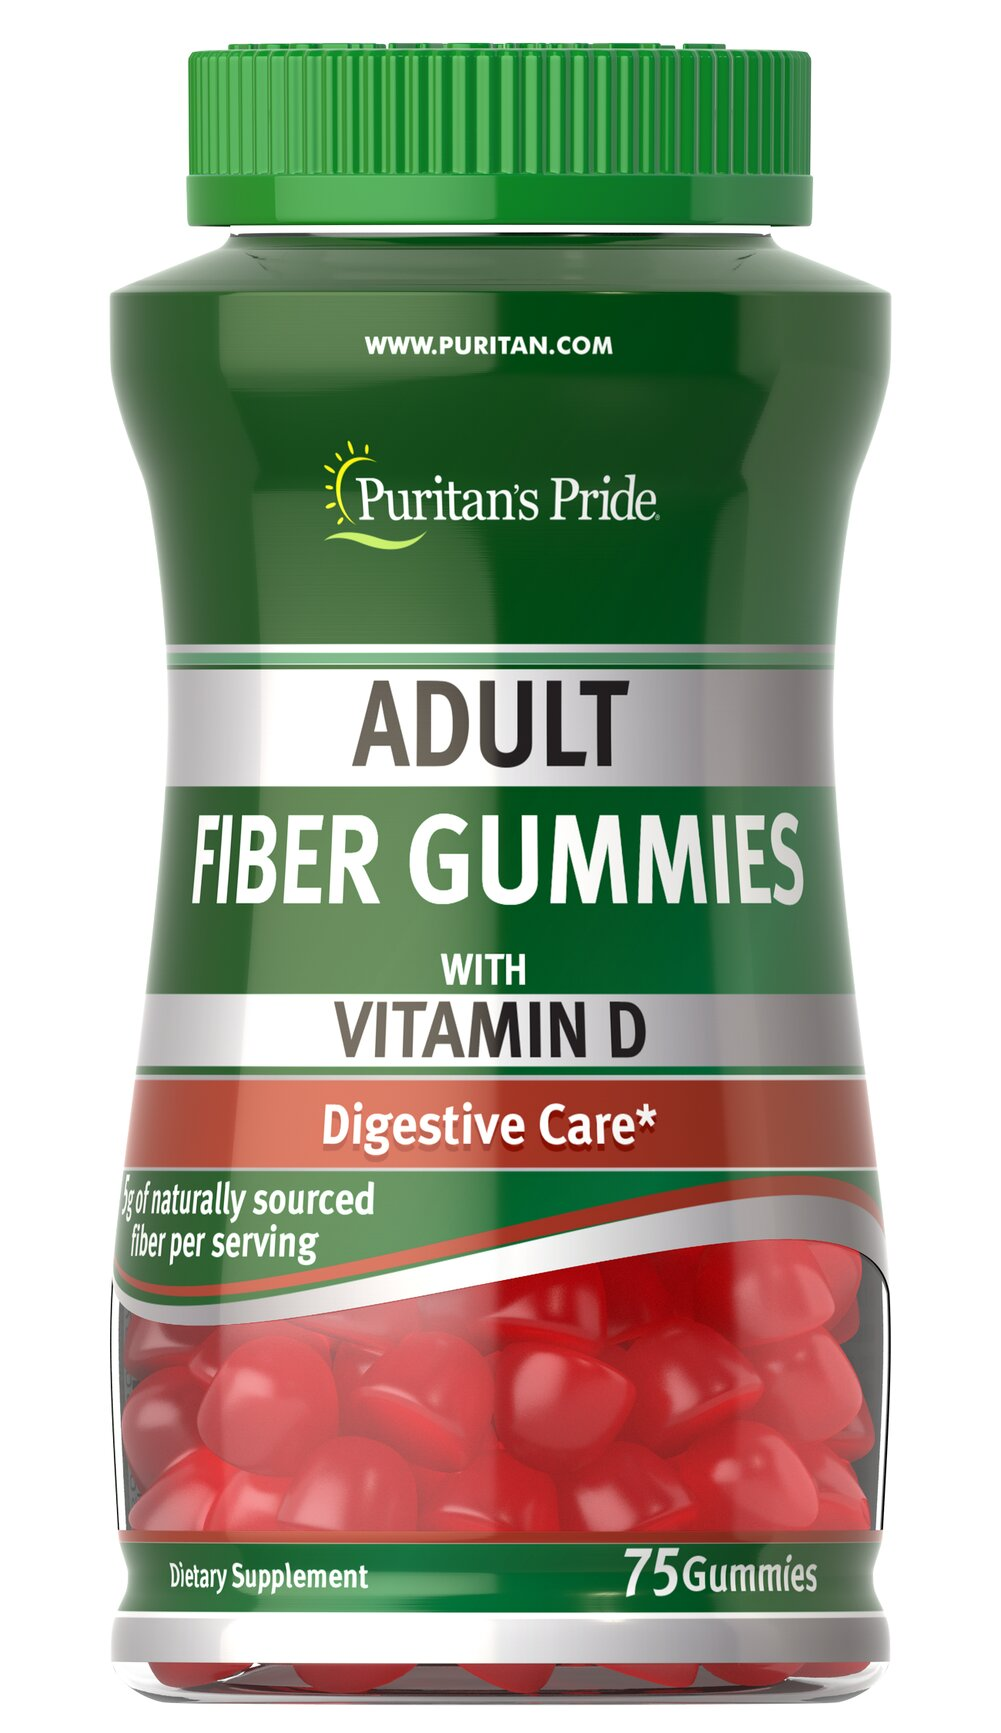 Adult Fiber Gummies with Vitamin D <p><span></span>For Colon & Digestive care.**</p> <p><span></span>Includes Vitamin D.</p> <p><span></span>Gummy vitamin for adults.</p> <p>Adult Fiber Gummies with Vitamin D are a good dietary source of fiber and help move food through the intestinal tract.** As a daily addition to your diet, one serving of Adult Fiber Gummies with Vitamin D contributes up to 5 grams of the fiber